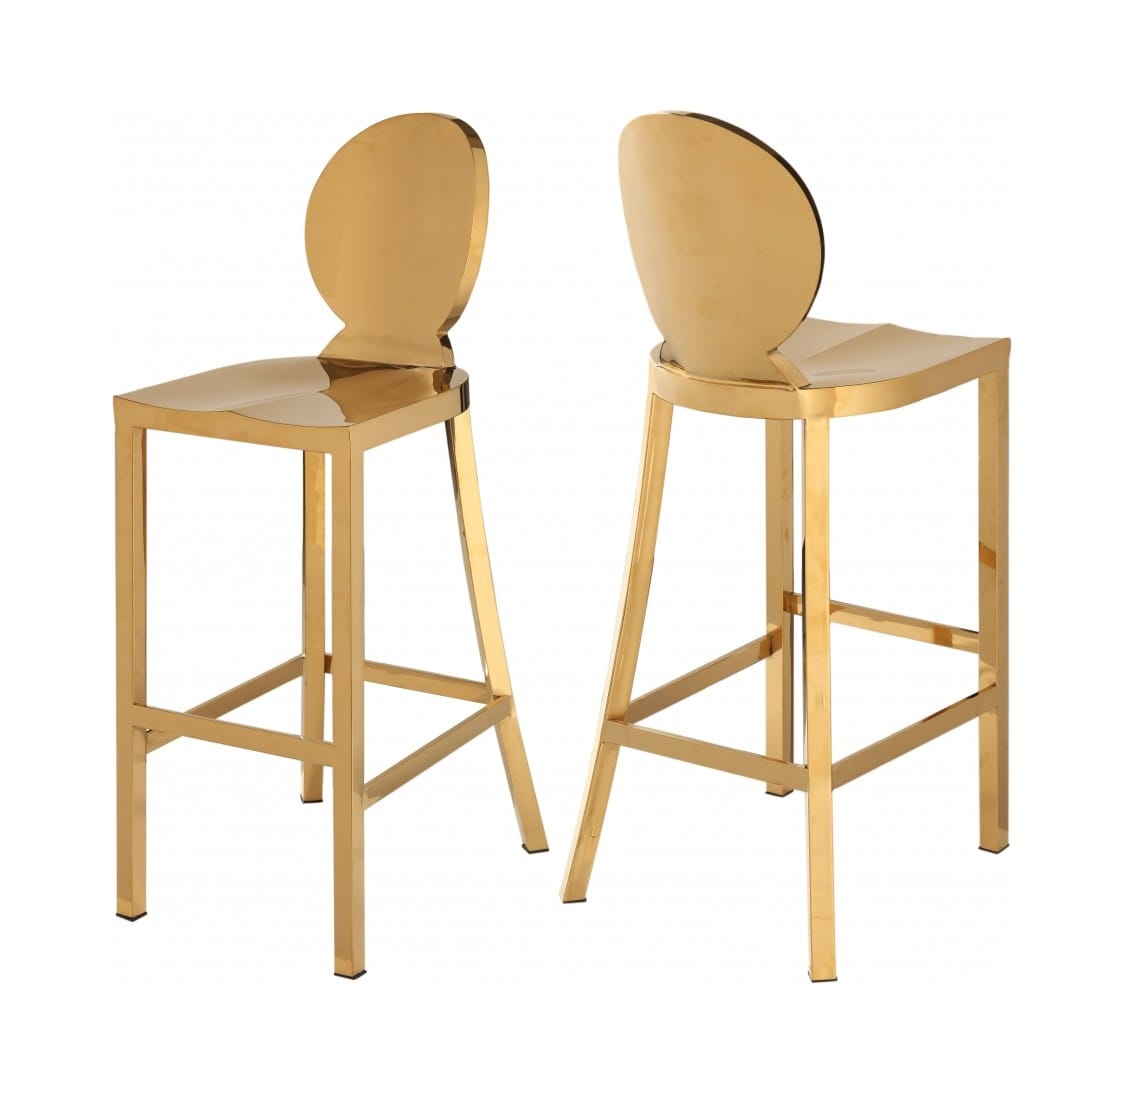 Terrific Maddox Gold Stainless Steel Bar Stool Set Of 2 By Meridian Furniture Caraccident5 Cool Chair Designs And Ideas Caraccident5Info